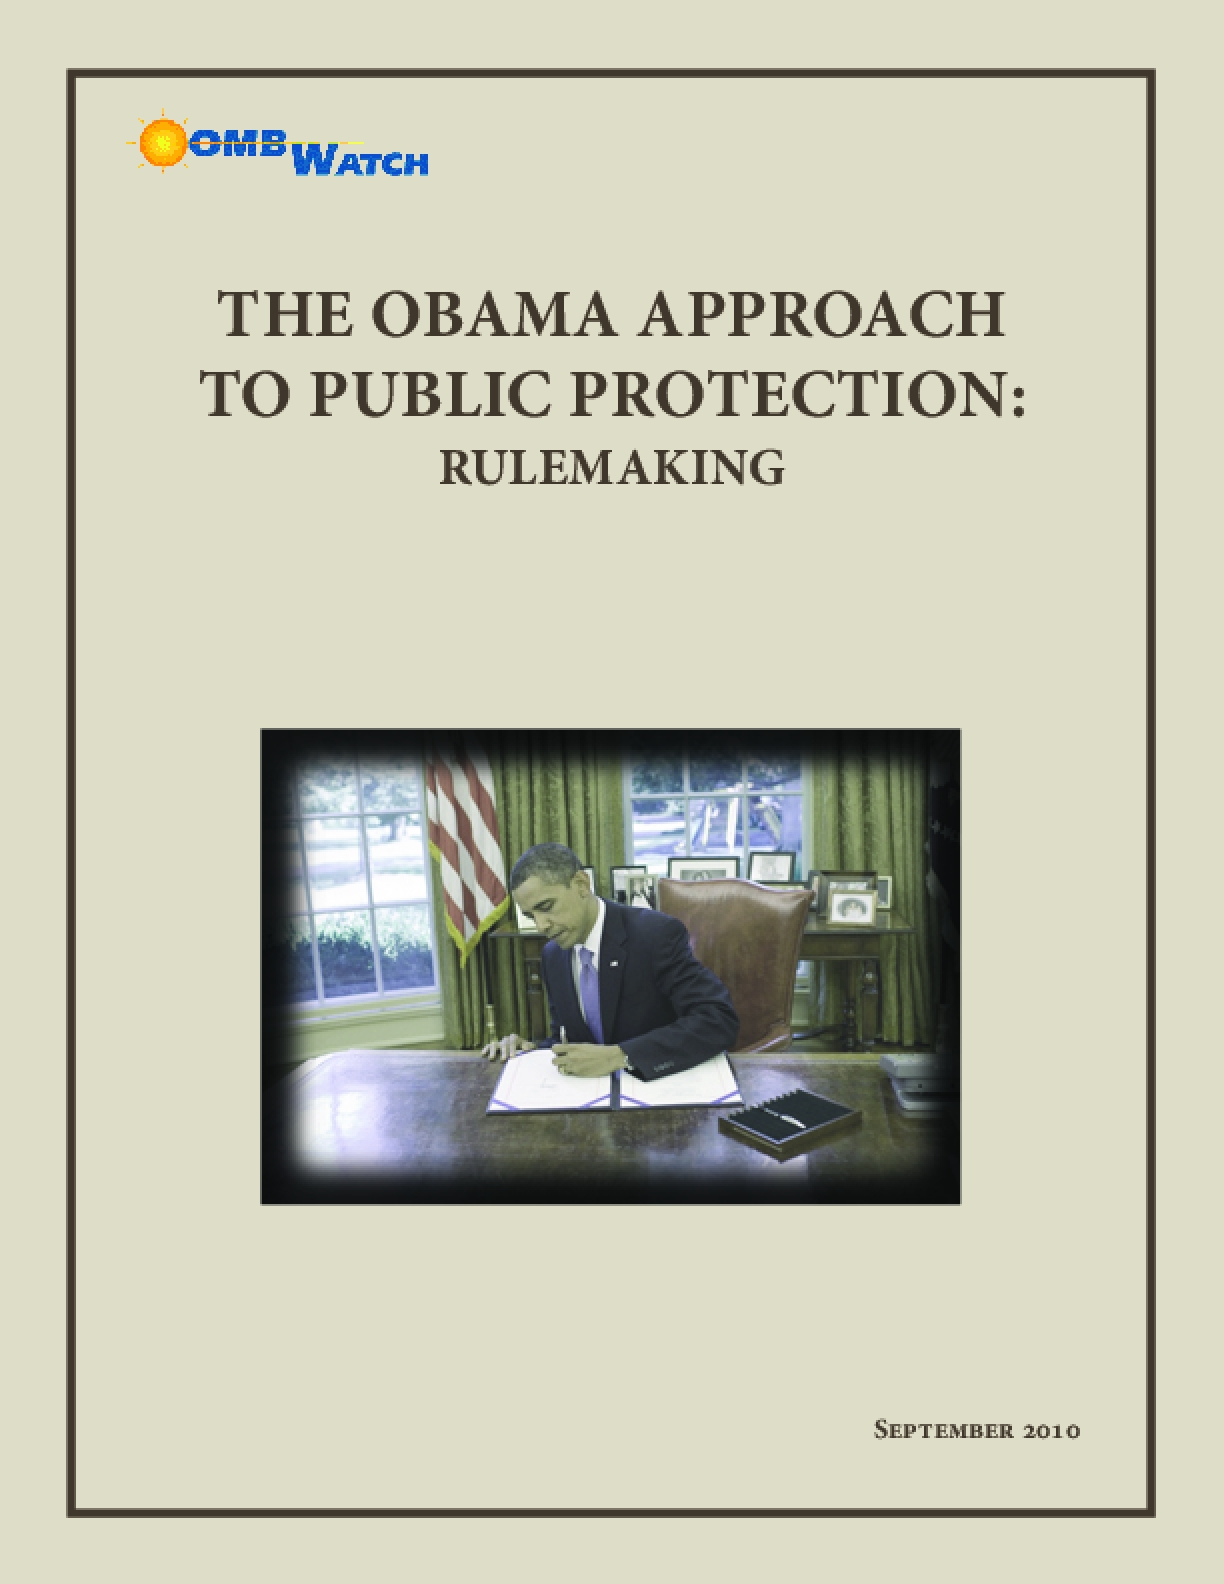 The Obama Approach to Public Protection: Rulemaking